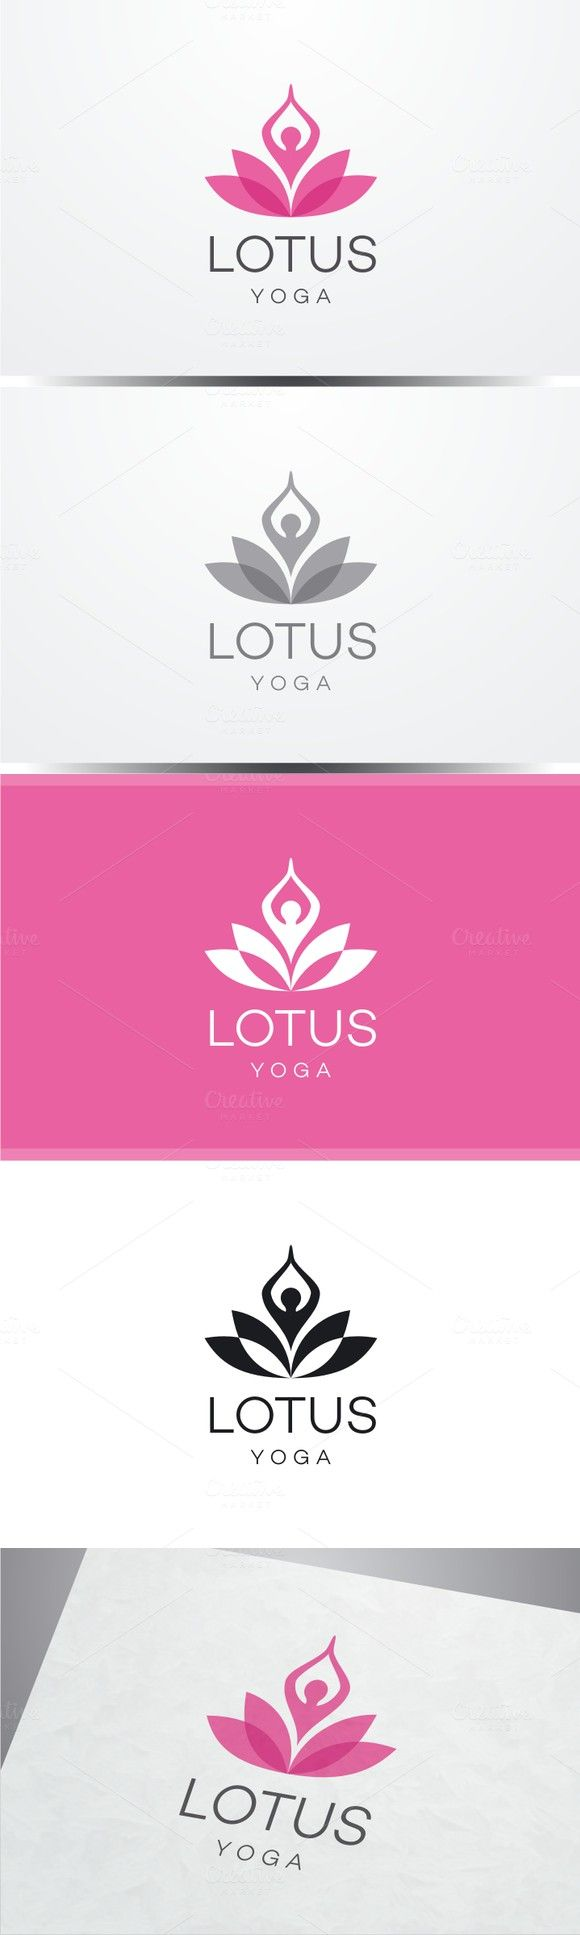 Lotus Yoga Logo. Human Icons. $30.00